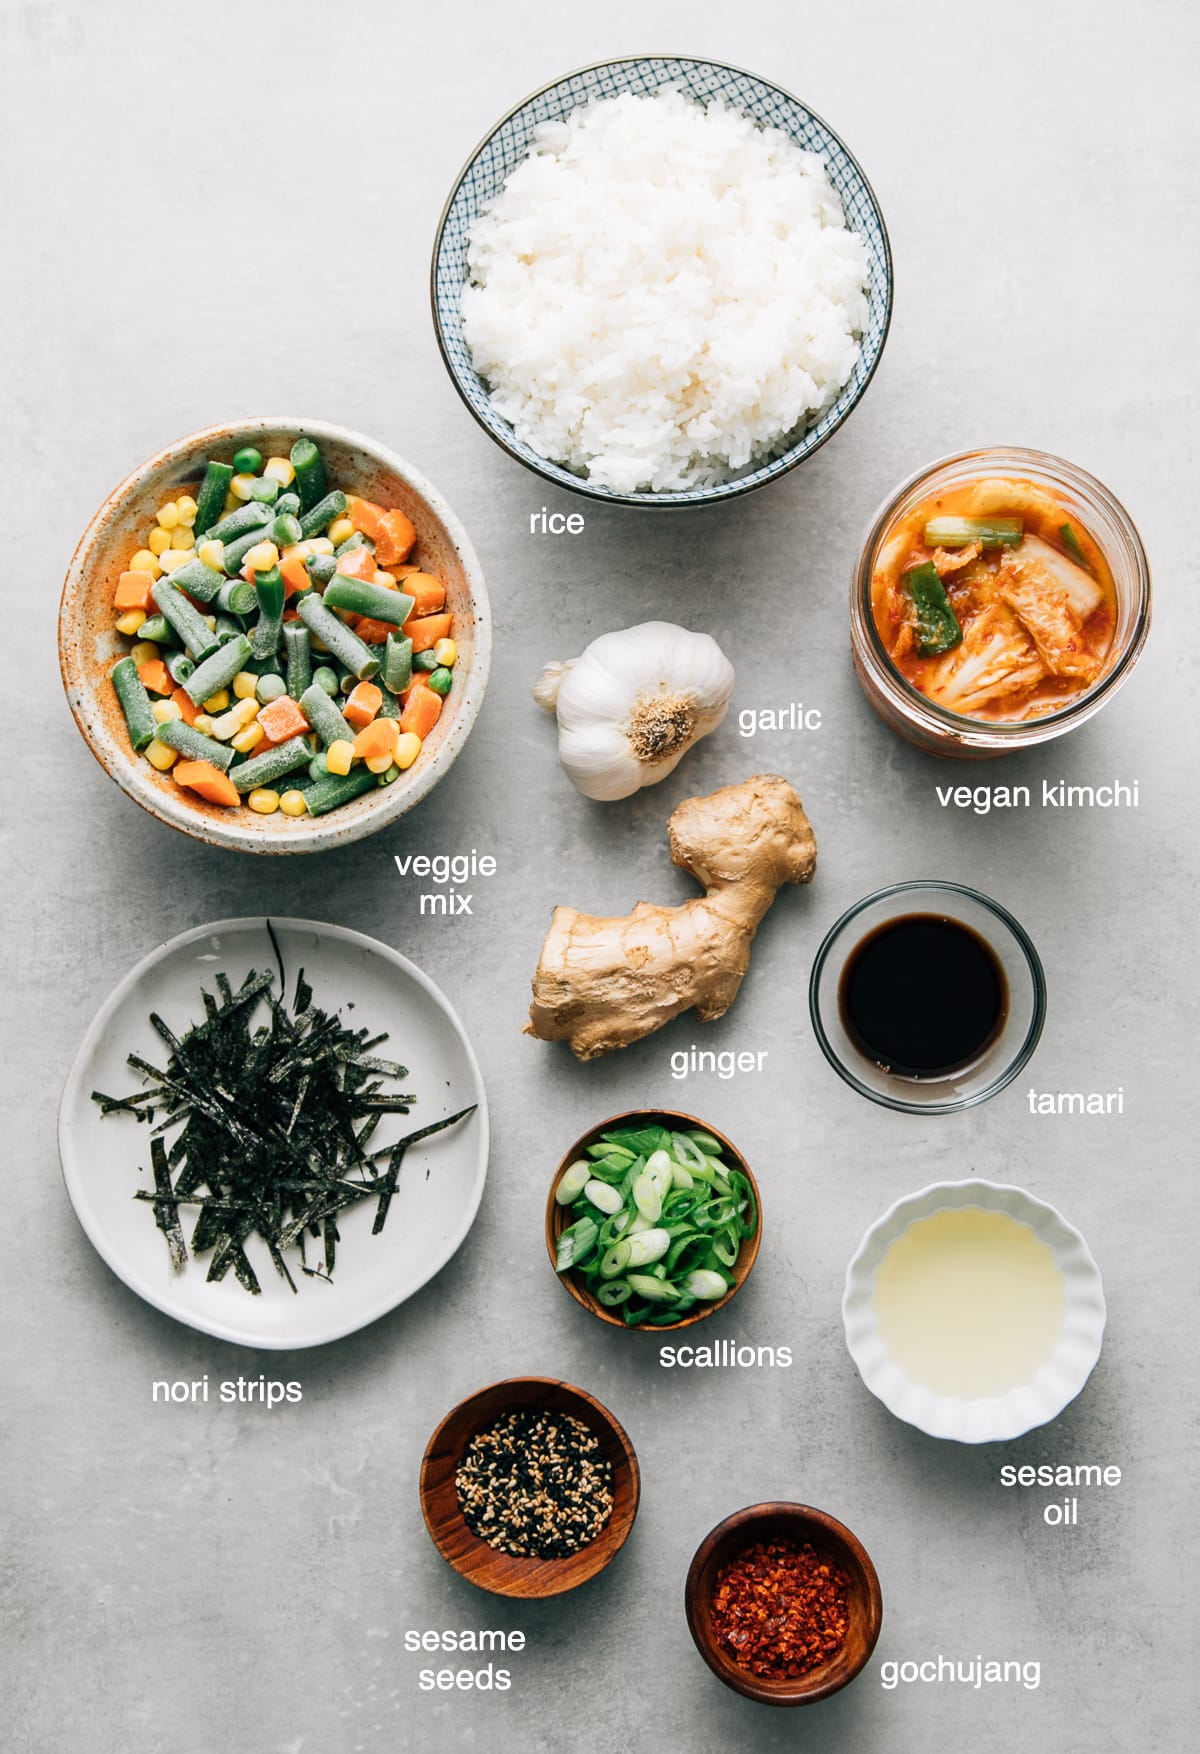 top down view of ingredients used to make vegan kimchi fried rice recipe.